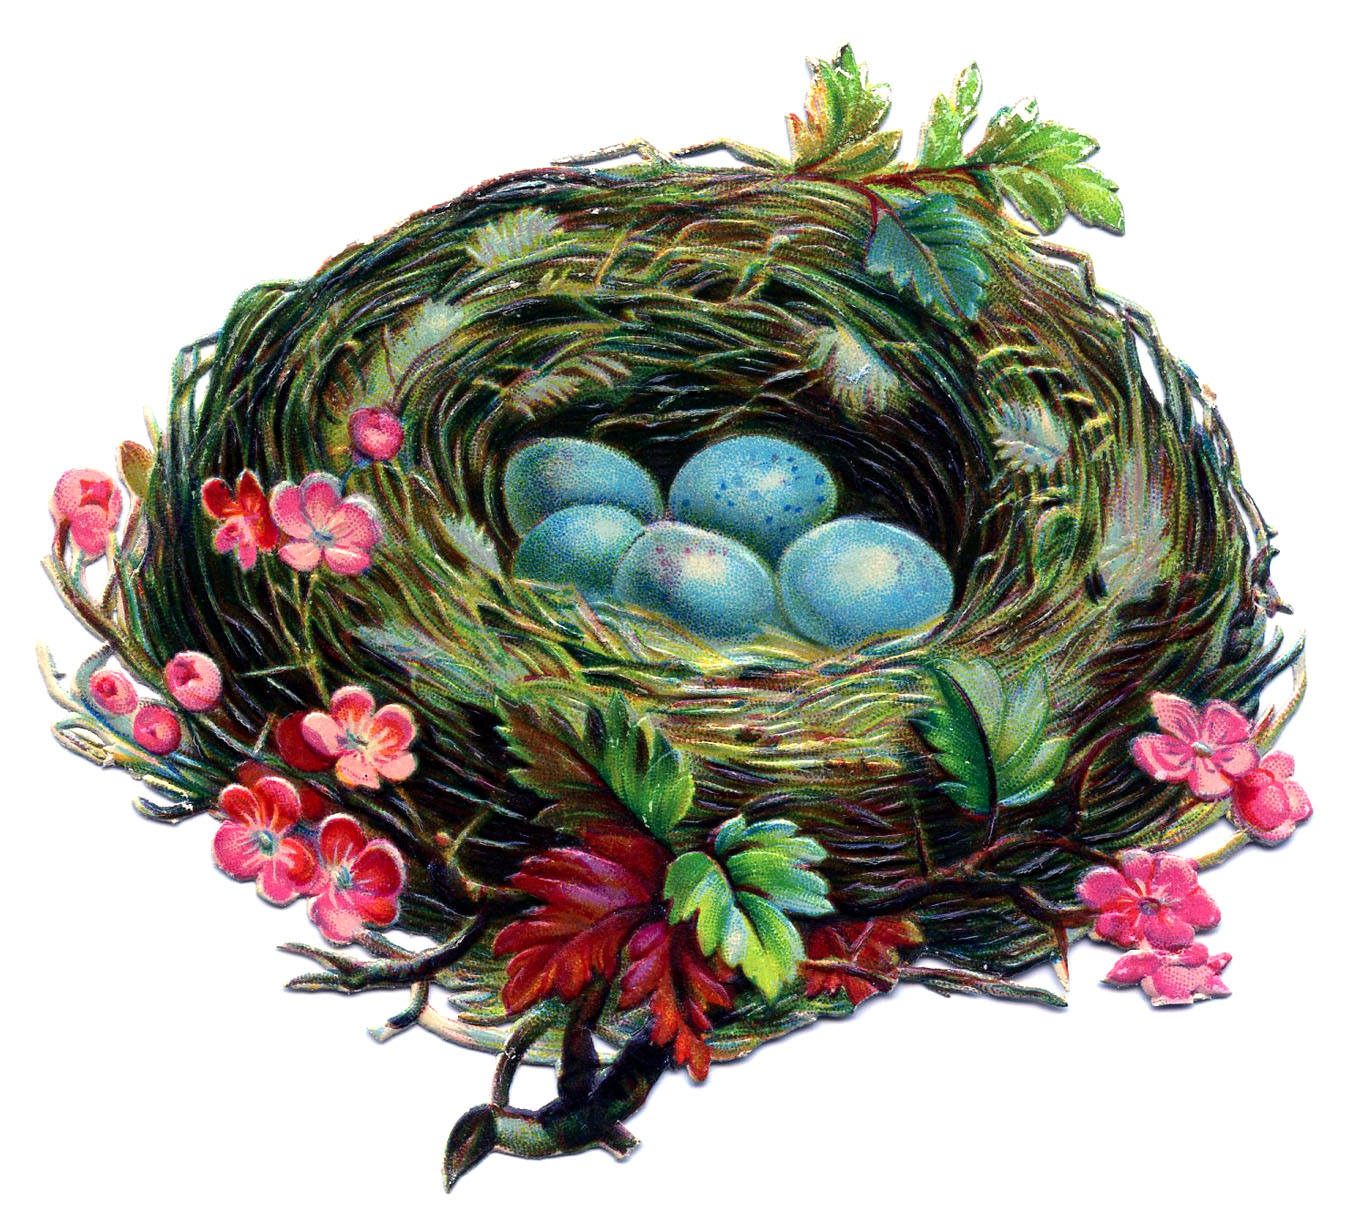 Vintage Clip Art   Pretty Nest With Blue Eggs   The Graphics Fairy